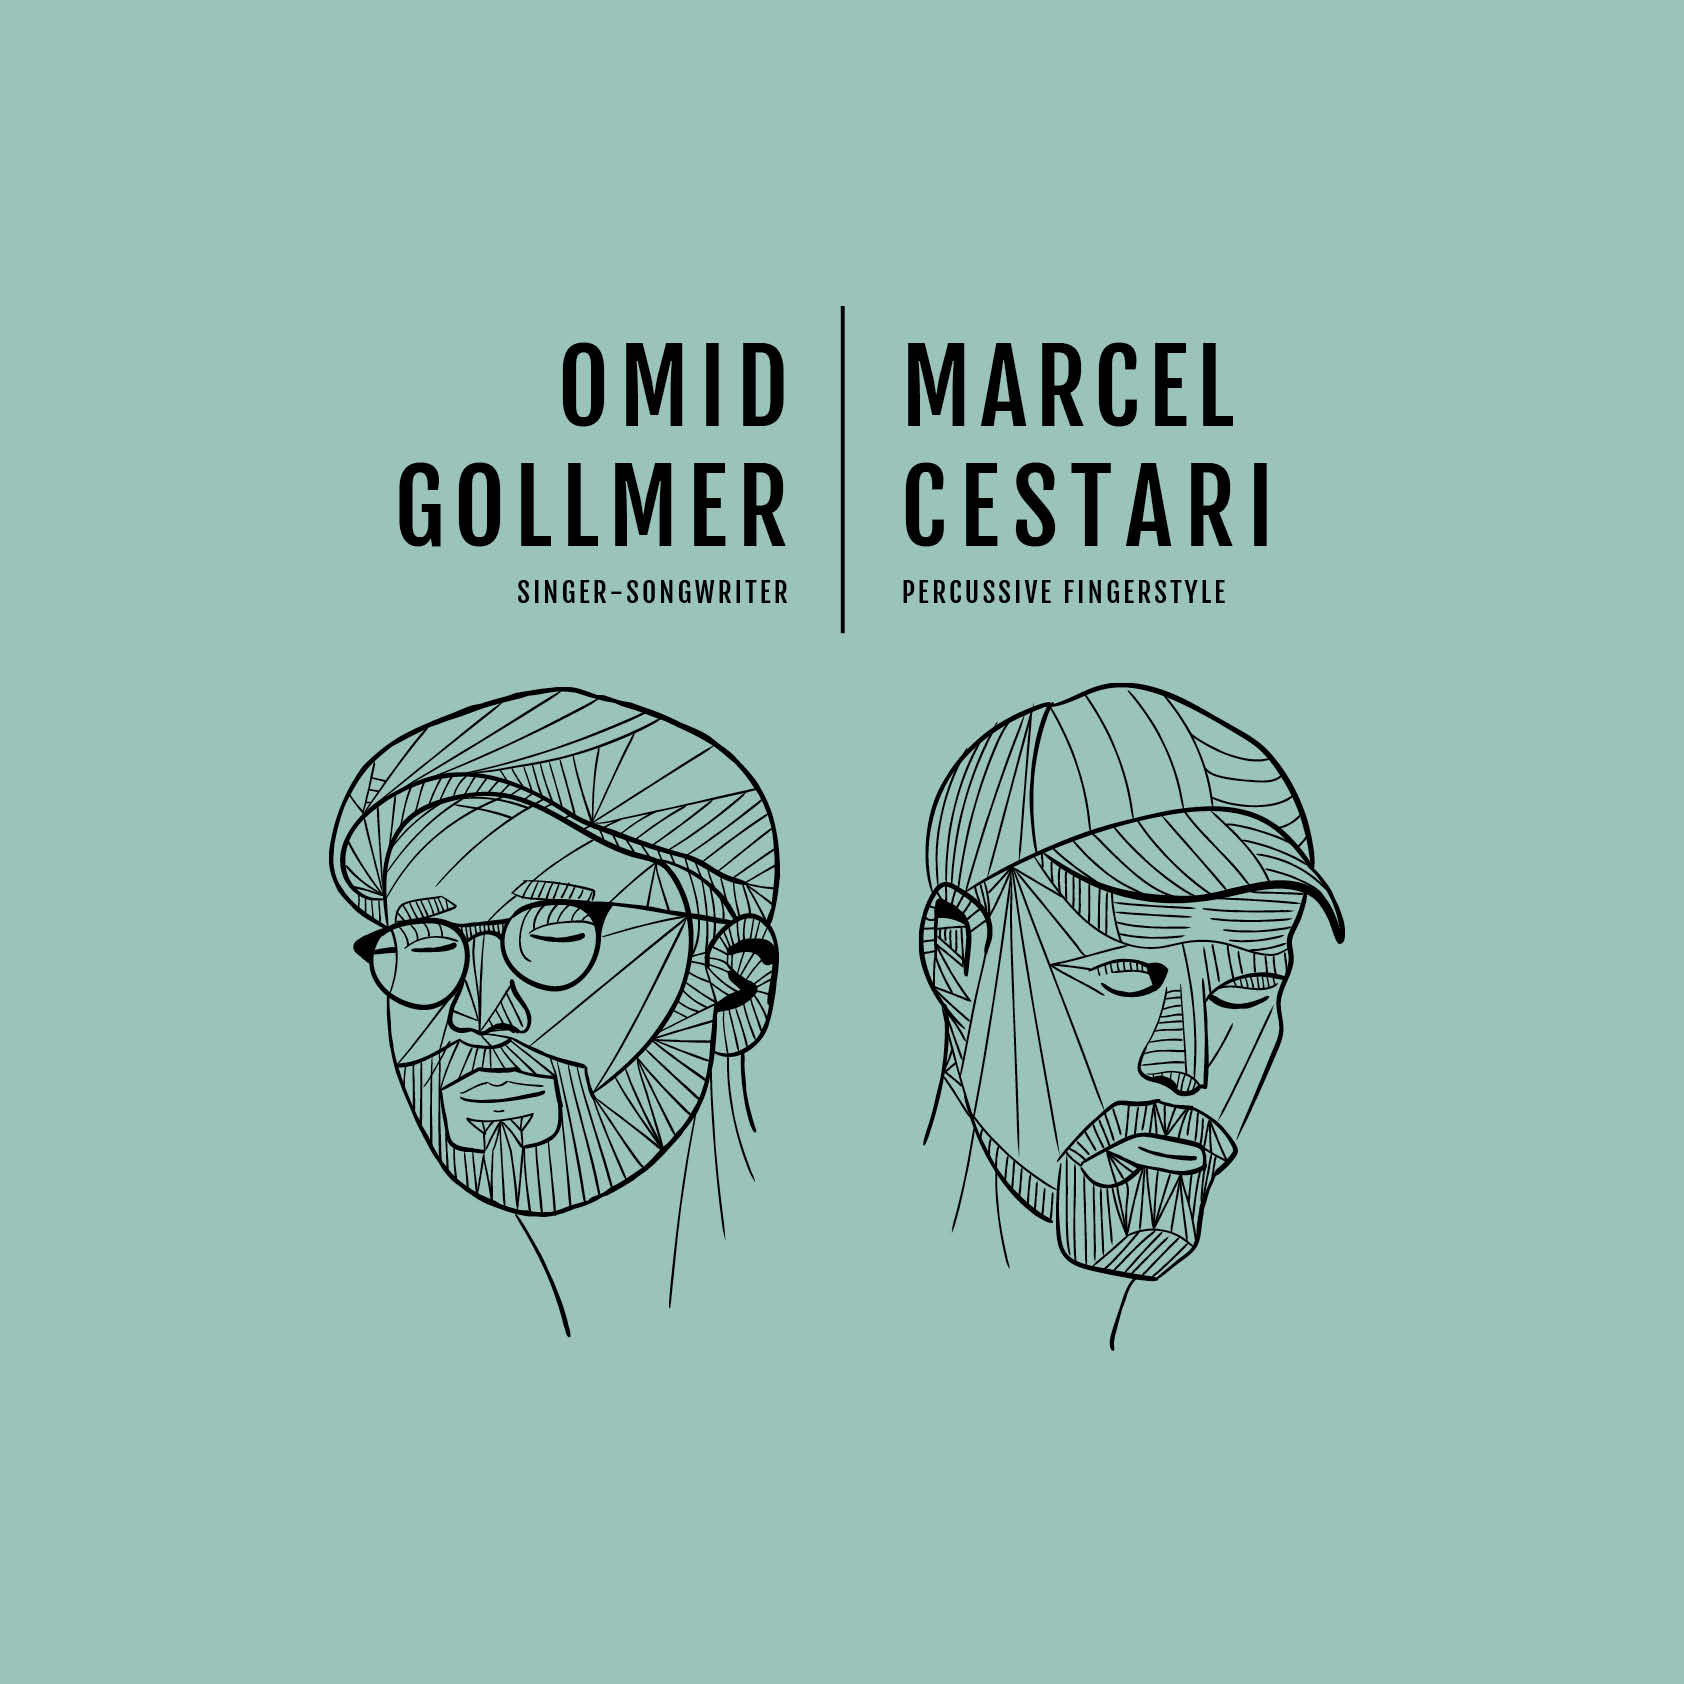 Gollmer & Cestari Illustration